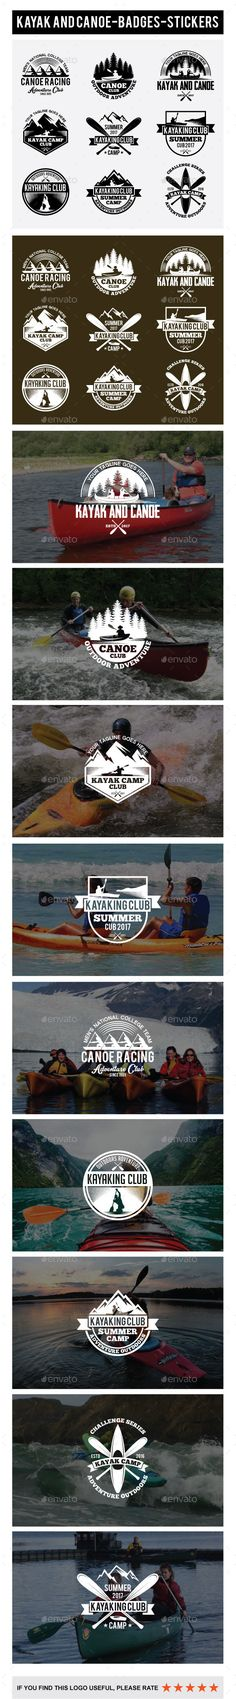 Kayak and Canoe Badges, Stickers - Templates Vector EPS, AI Illustrator